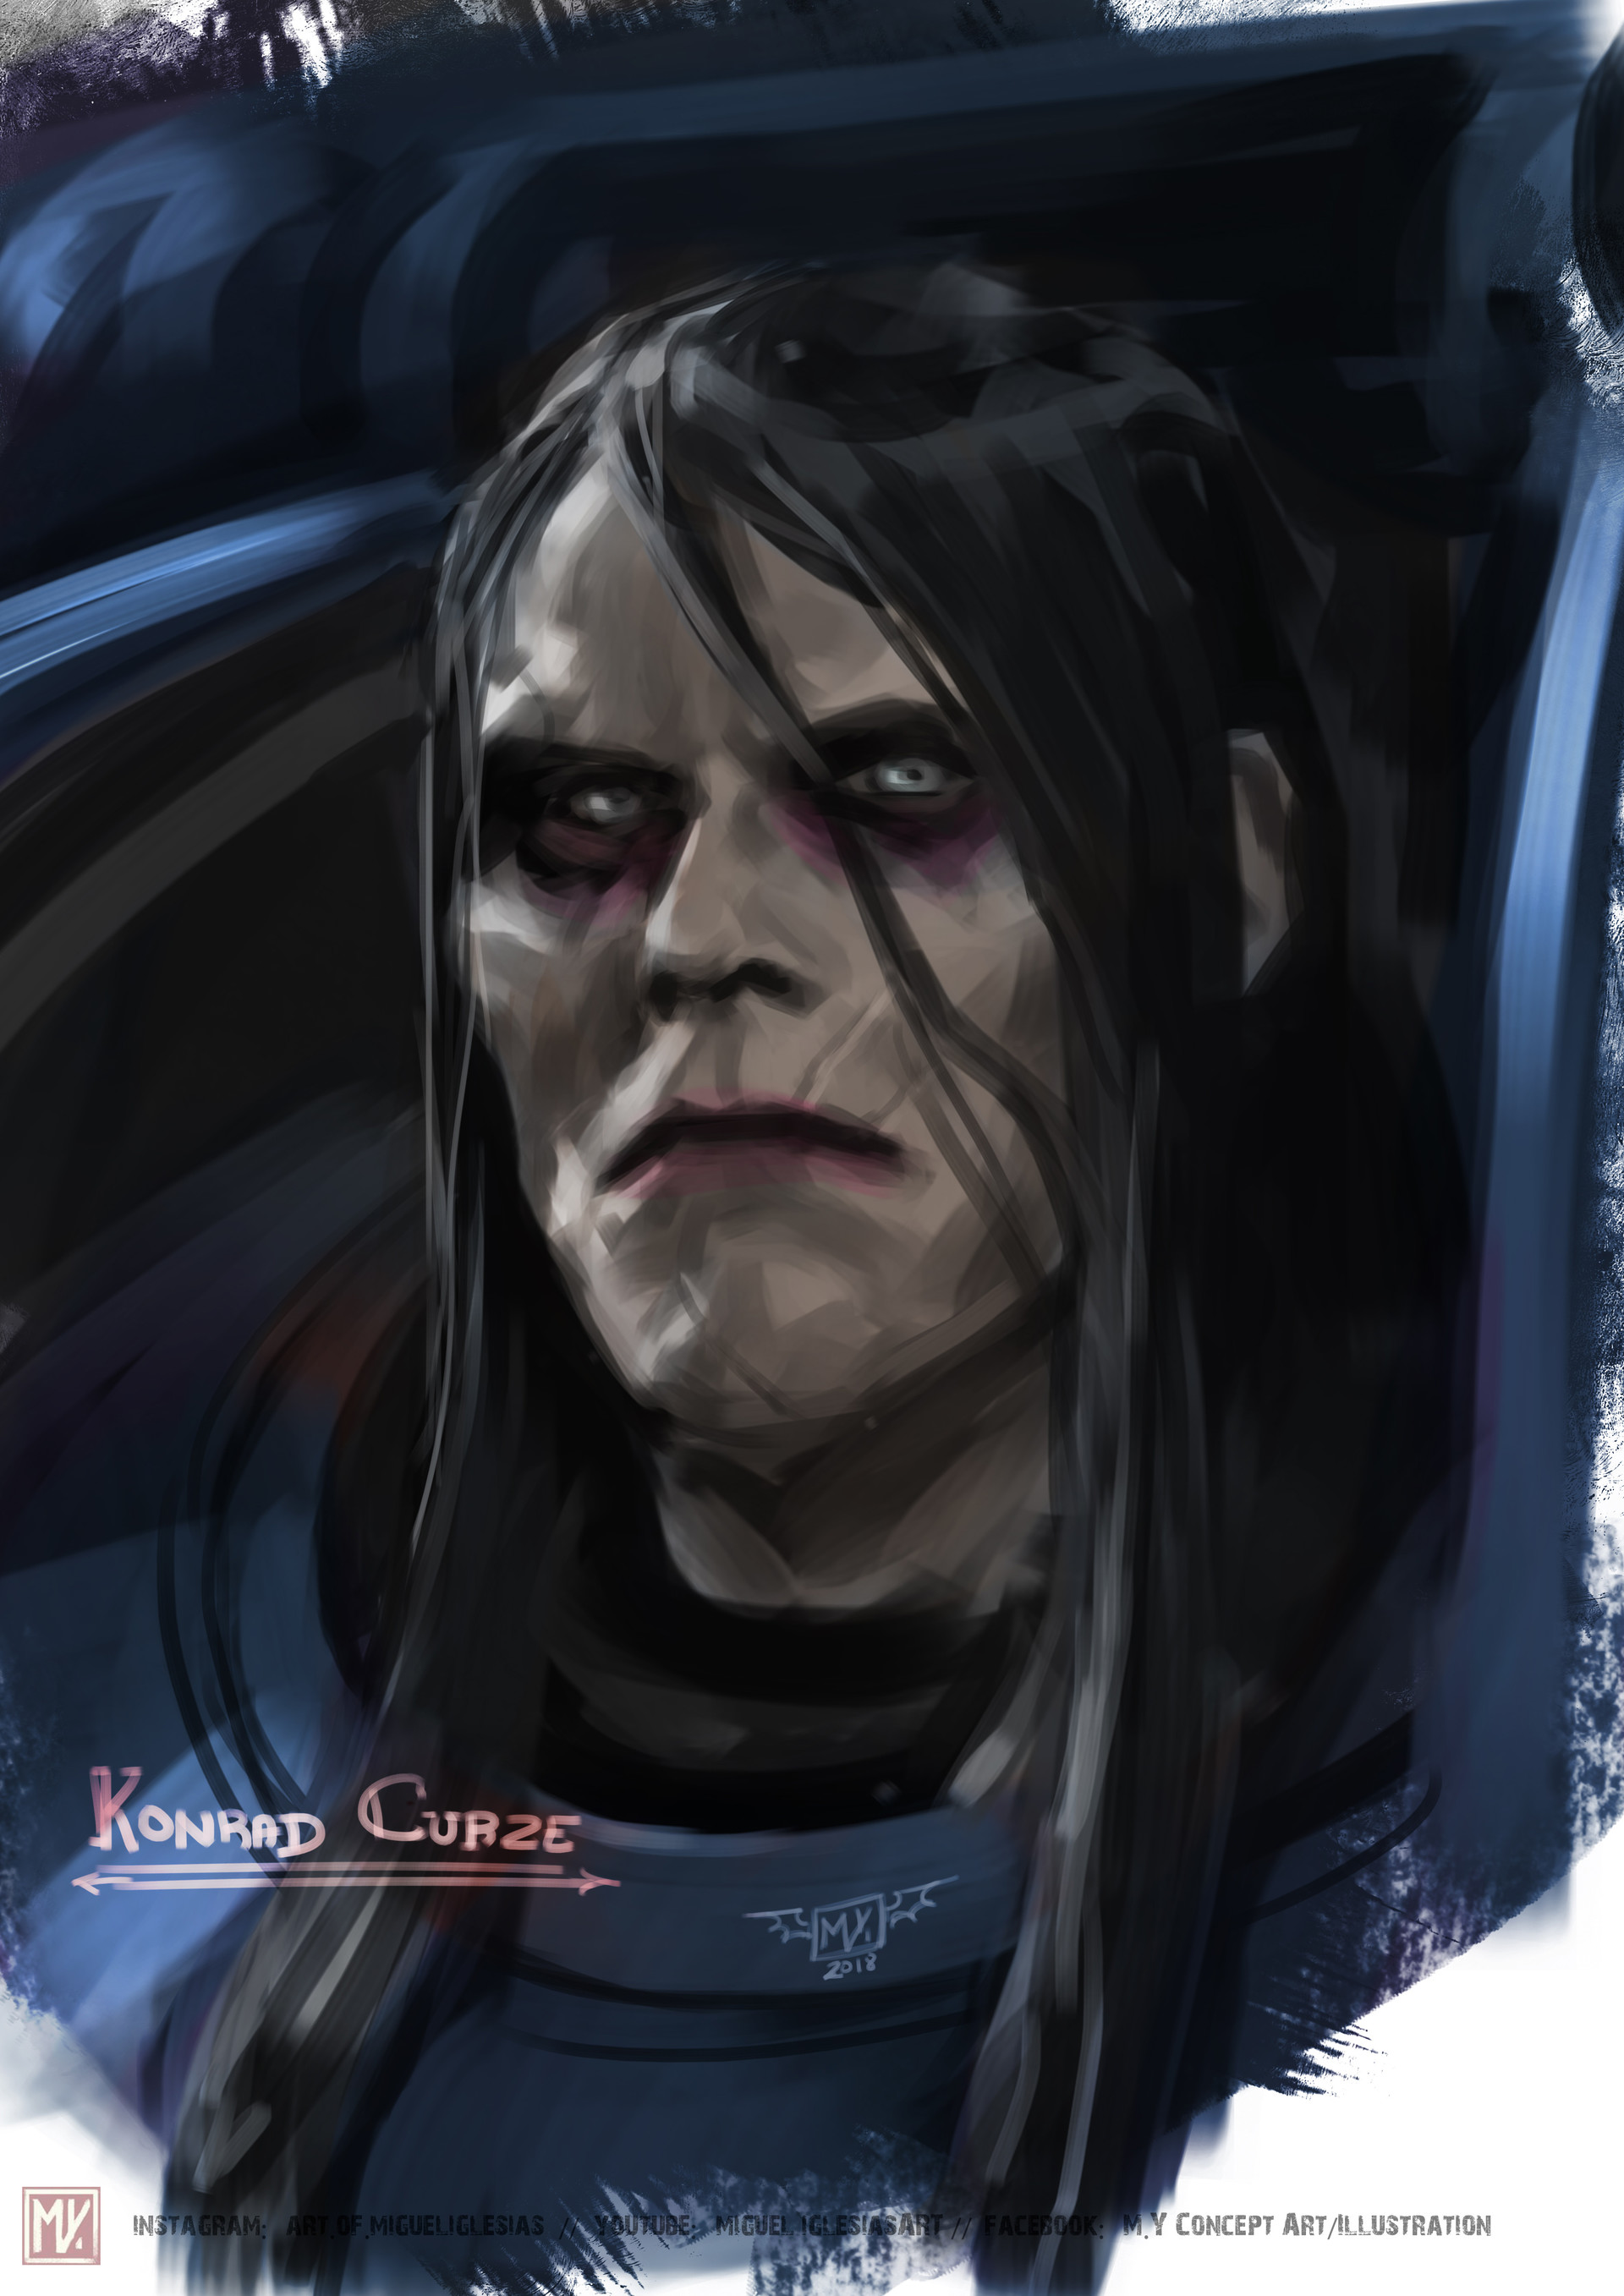 8 - kL2x8wB - Konrad Curze, Primarch of the Night Lords